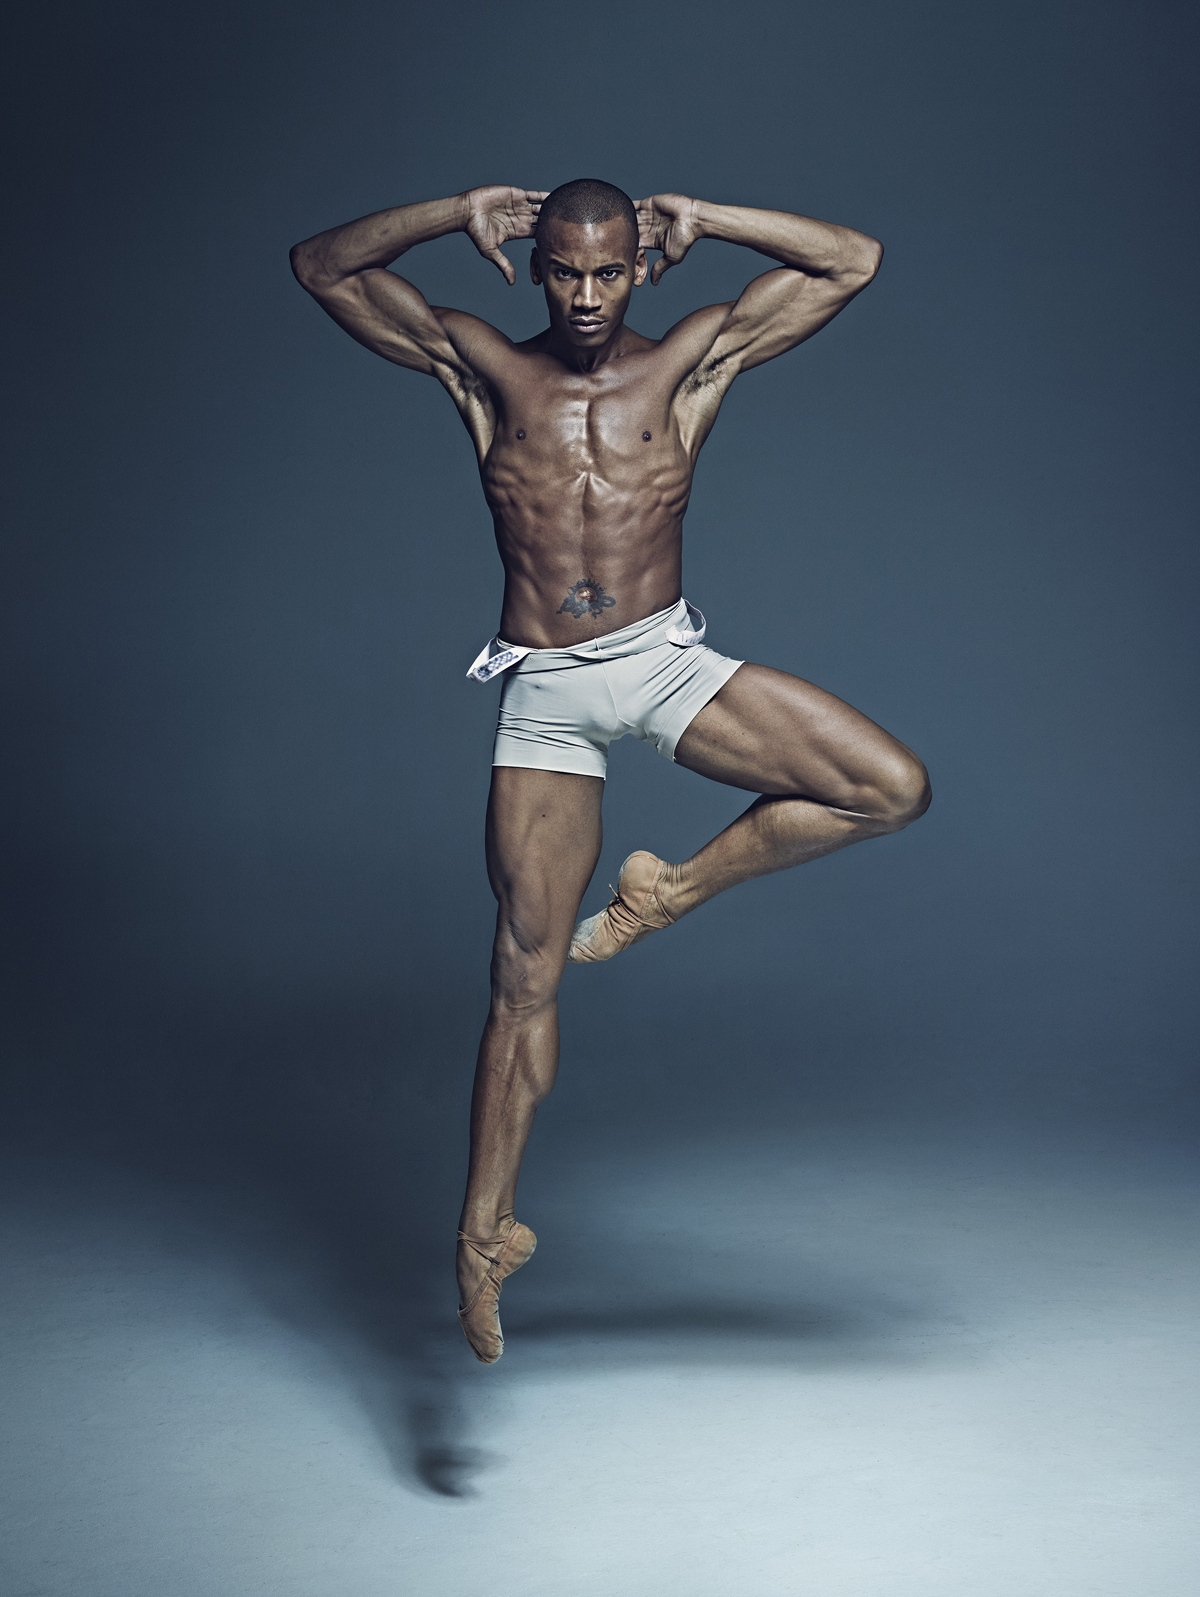 Eric Underwood, soloist of The Royal Ballet